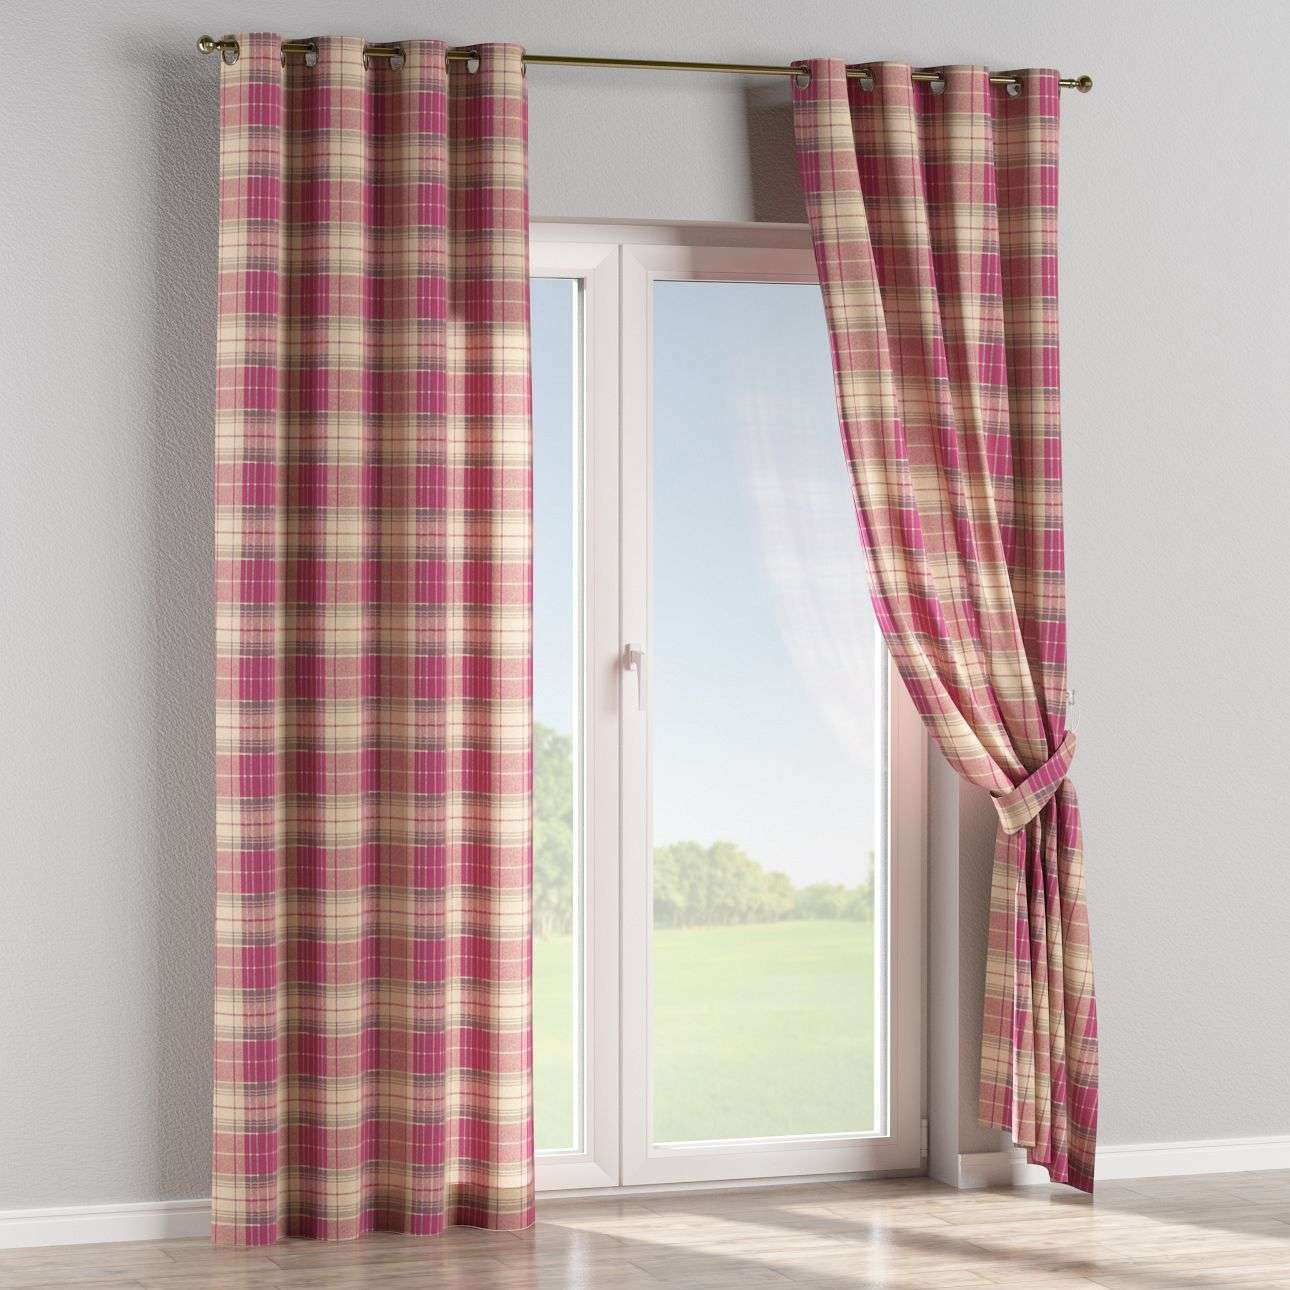 Eyelet curtains 130 × 260 cm (51 × 102 inch) in collection Mirella, fabric: 142-07